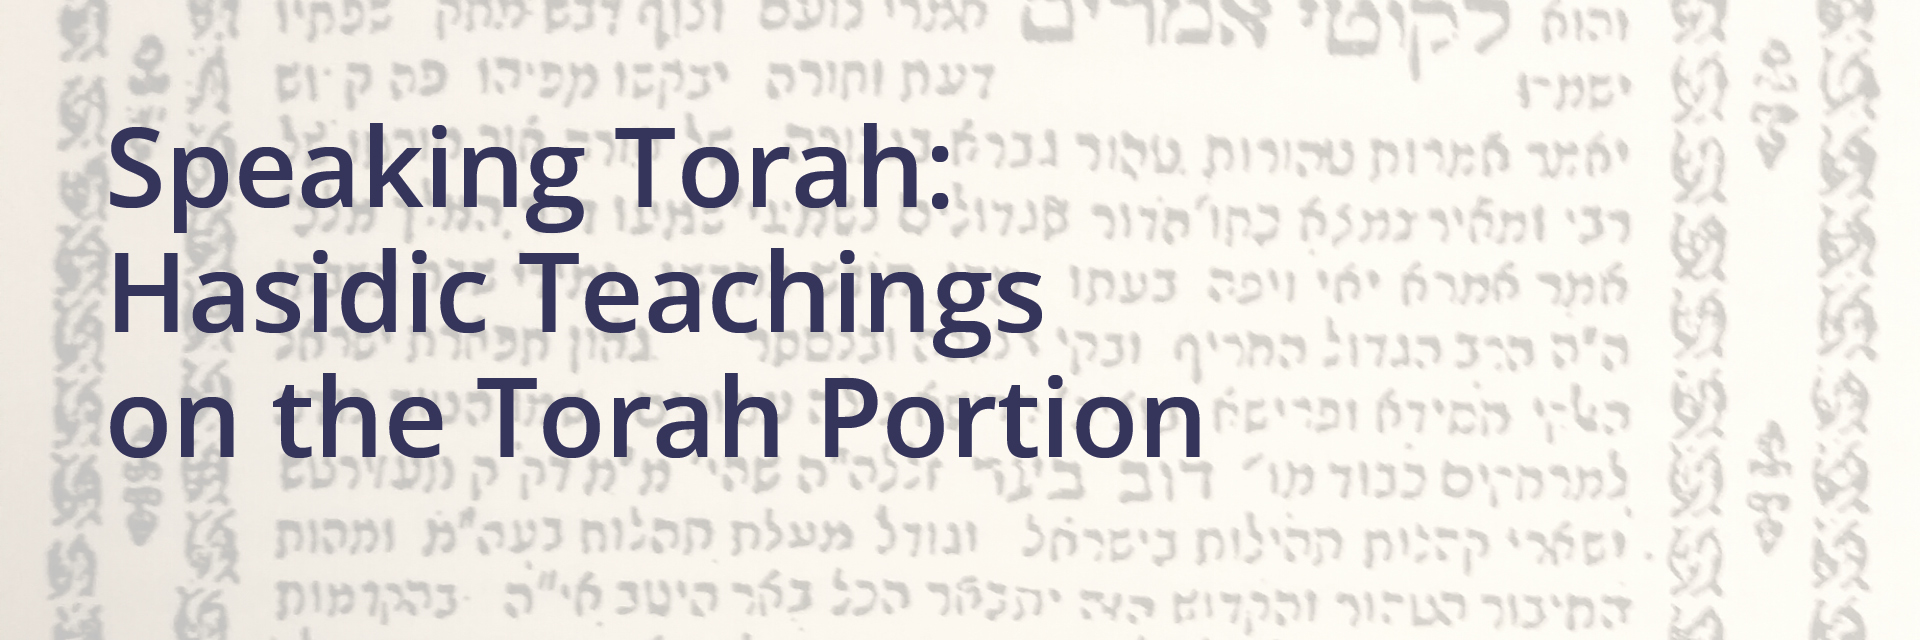 "<a href=""https://www.congkti.org/event/speaking-torah-hasidic-teachings-torah-portion-0.html#""